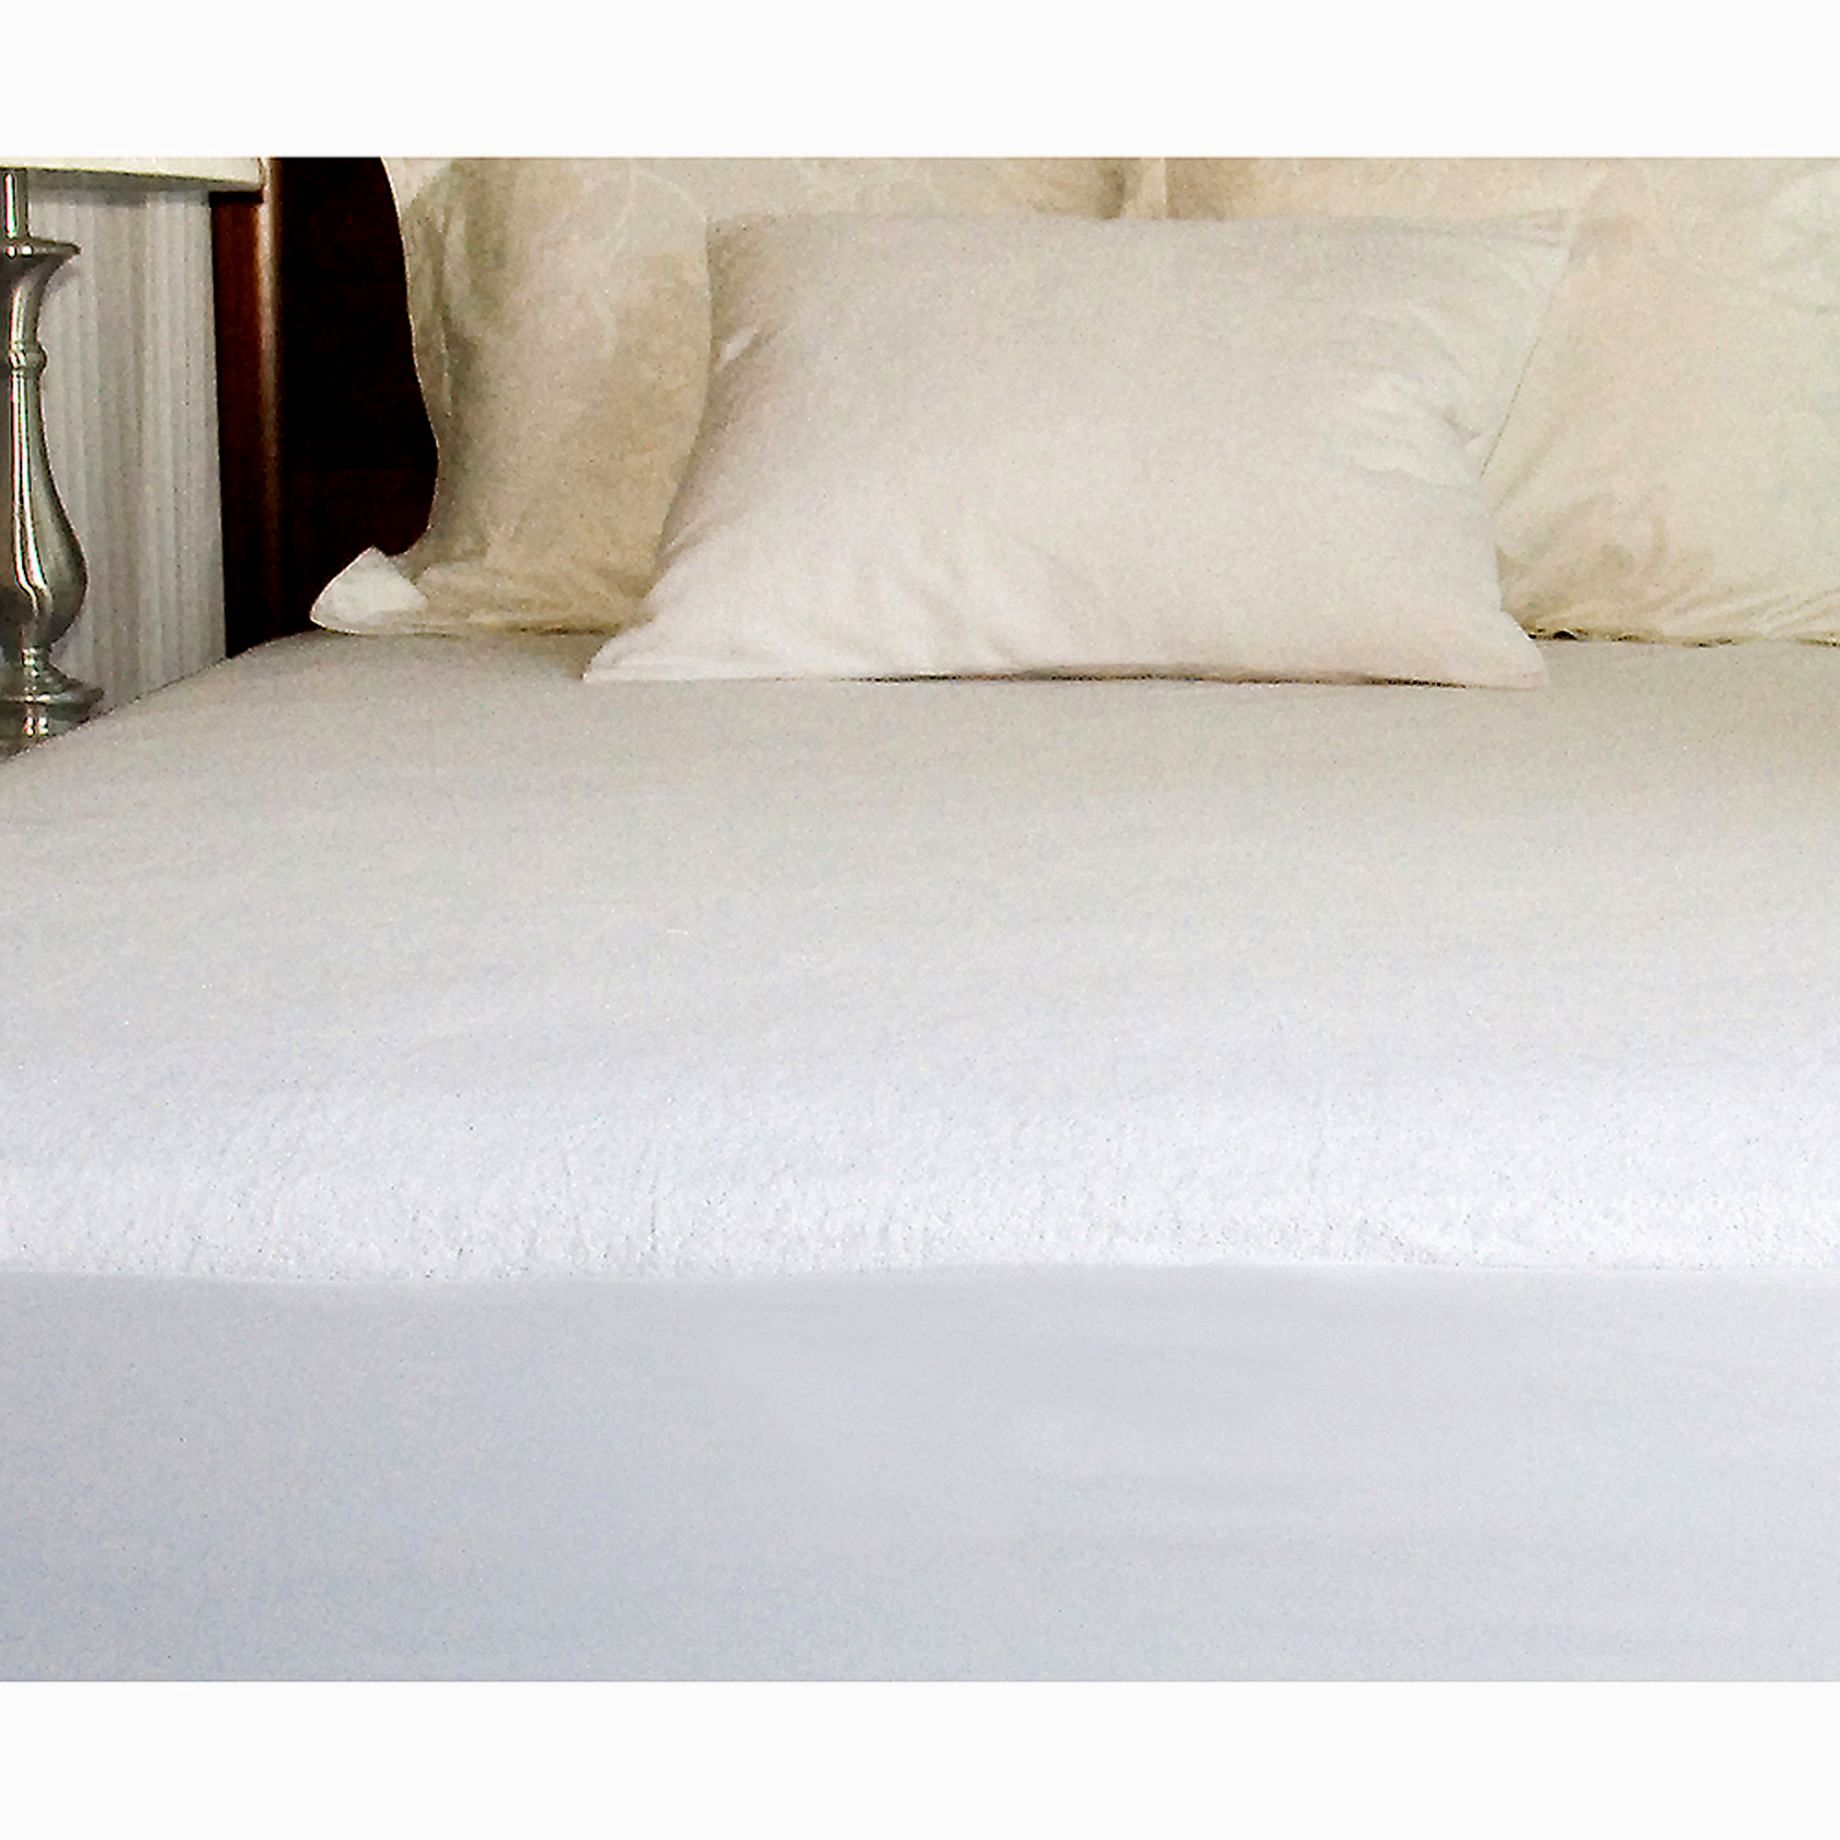 lovely sofa bed sheets construction-Luxury sofa Bed Sheets Model